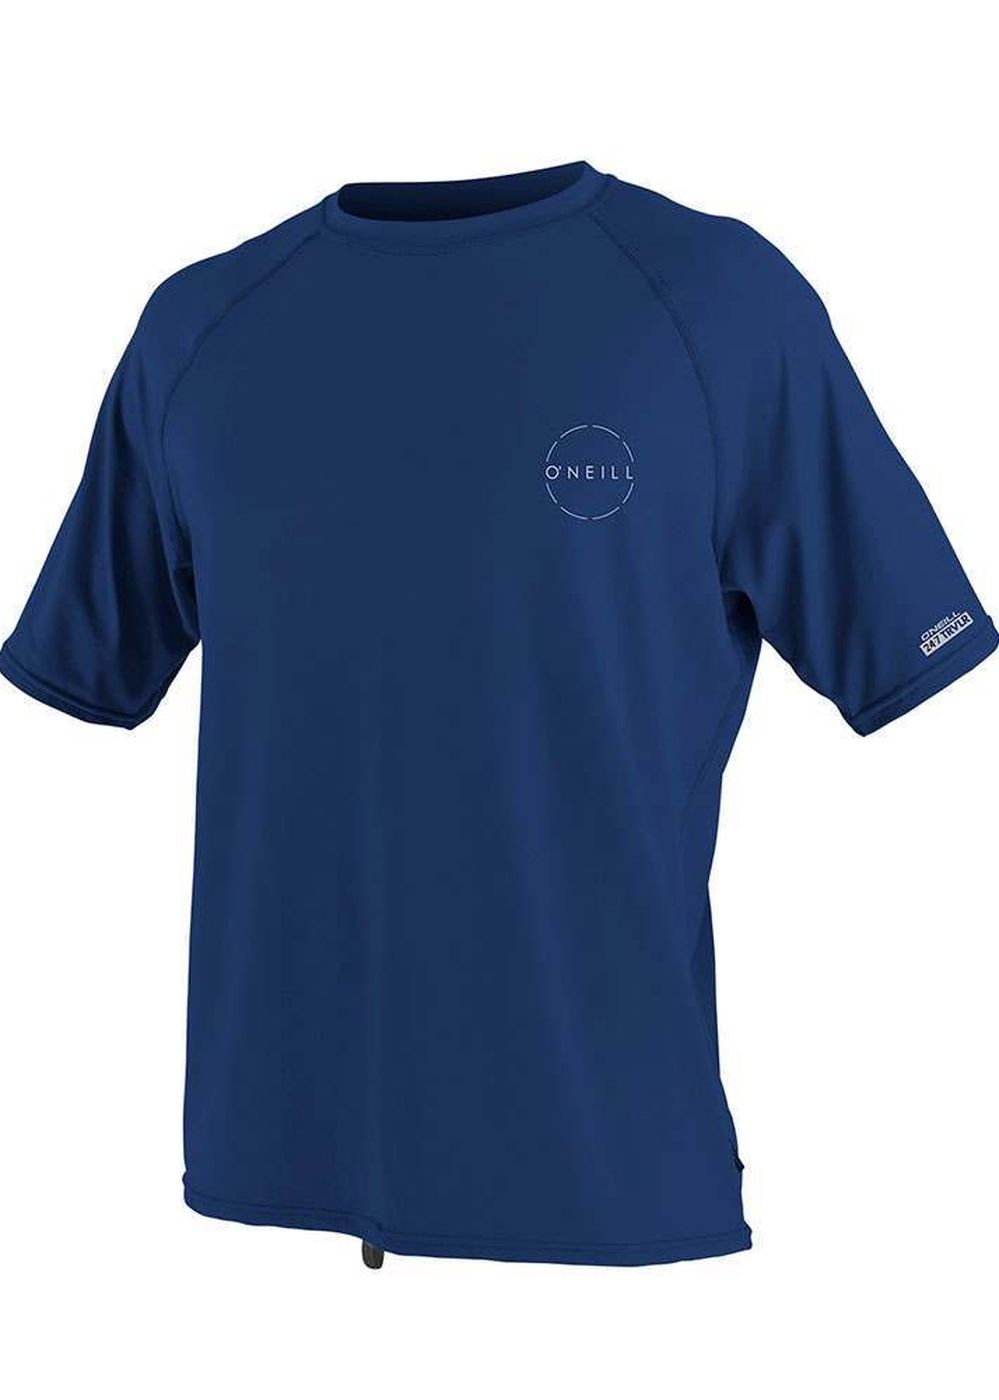 ONeill 24-7 Short Sleeve Rash Tee Navy